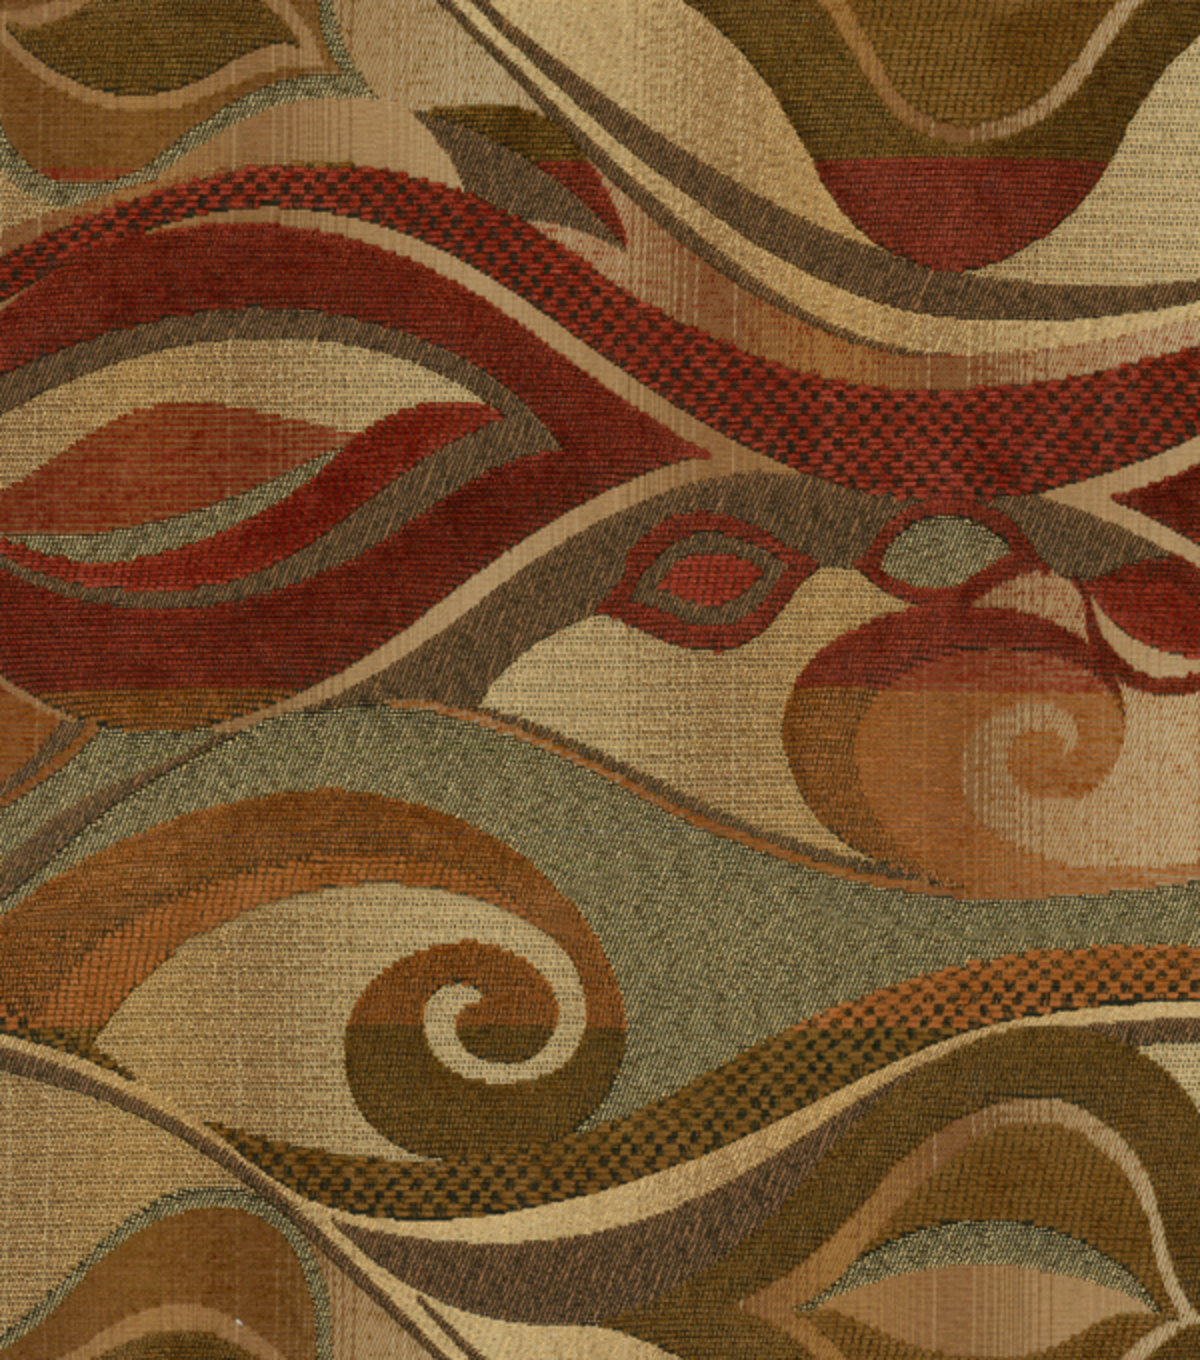 Sofa Fabric: Upholstery Fabric-Richloom Provocative Spice